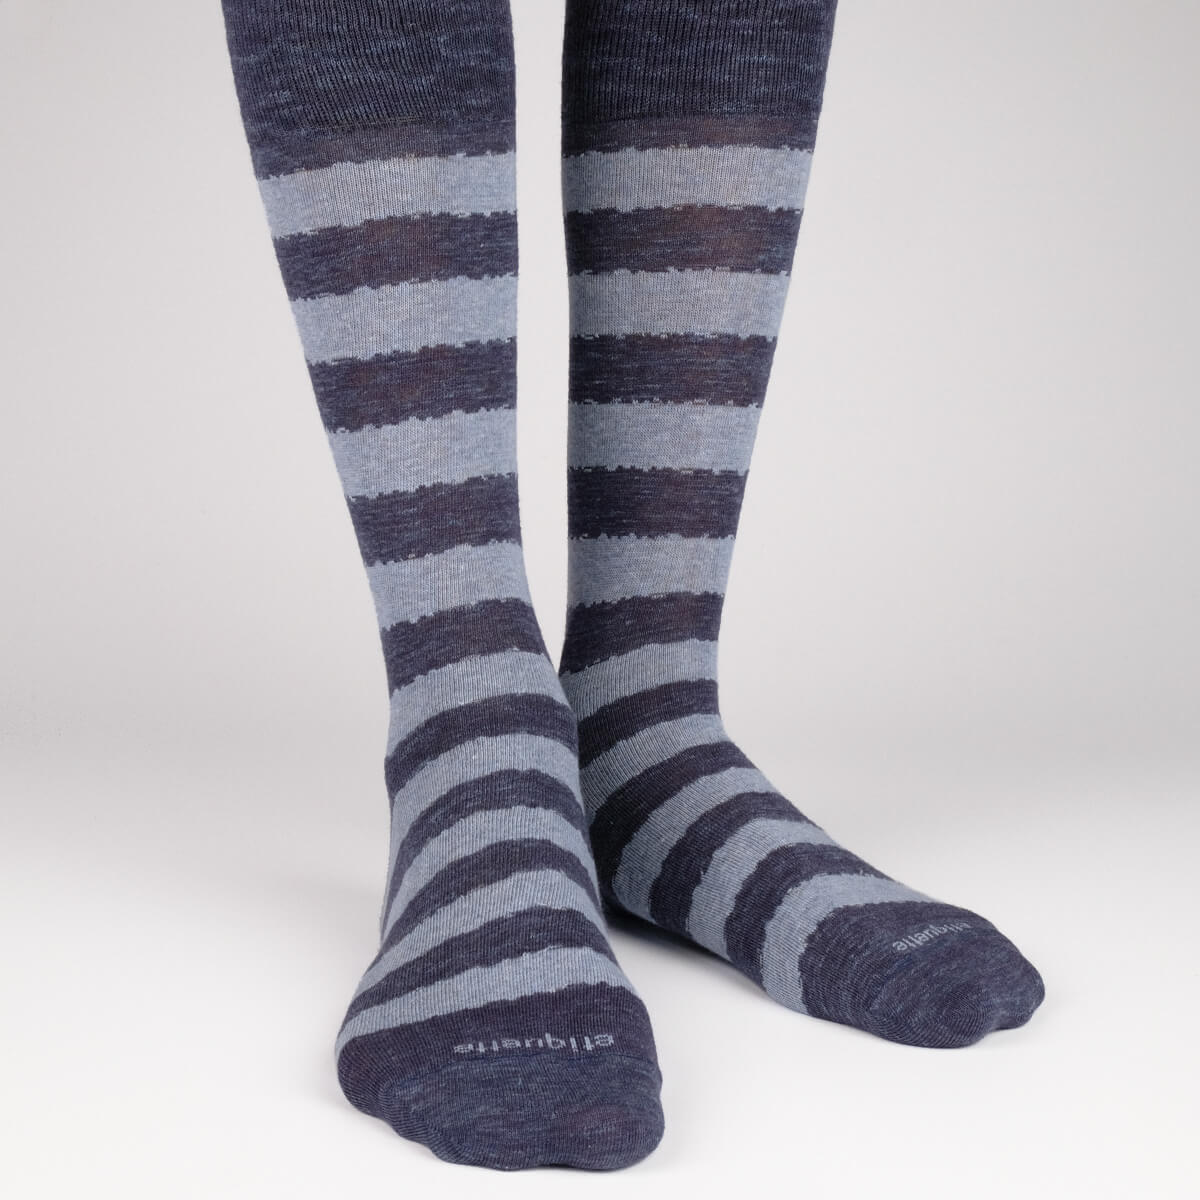 Mens Socks - Clear Skies Men's Socks Gift Box - Grey⎪Etiquette Clothiers